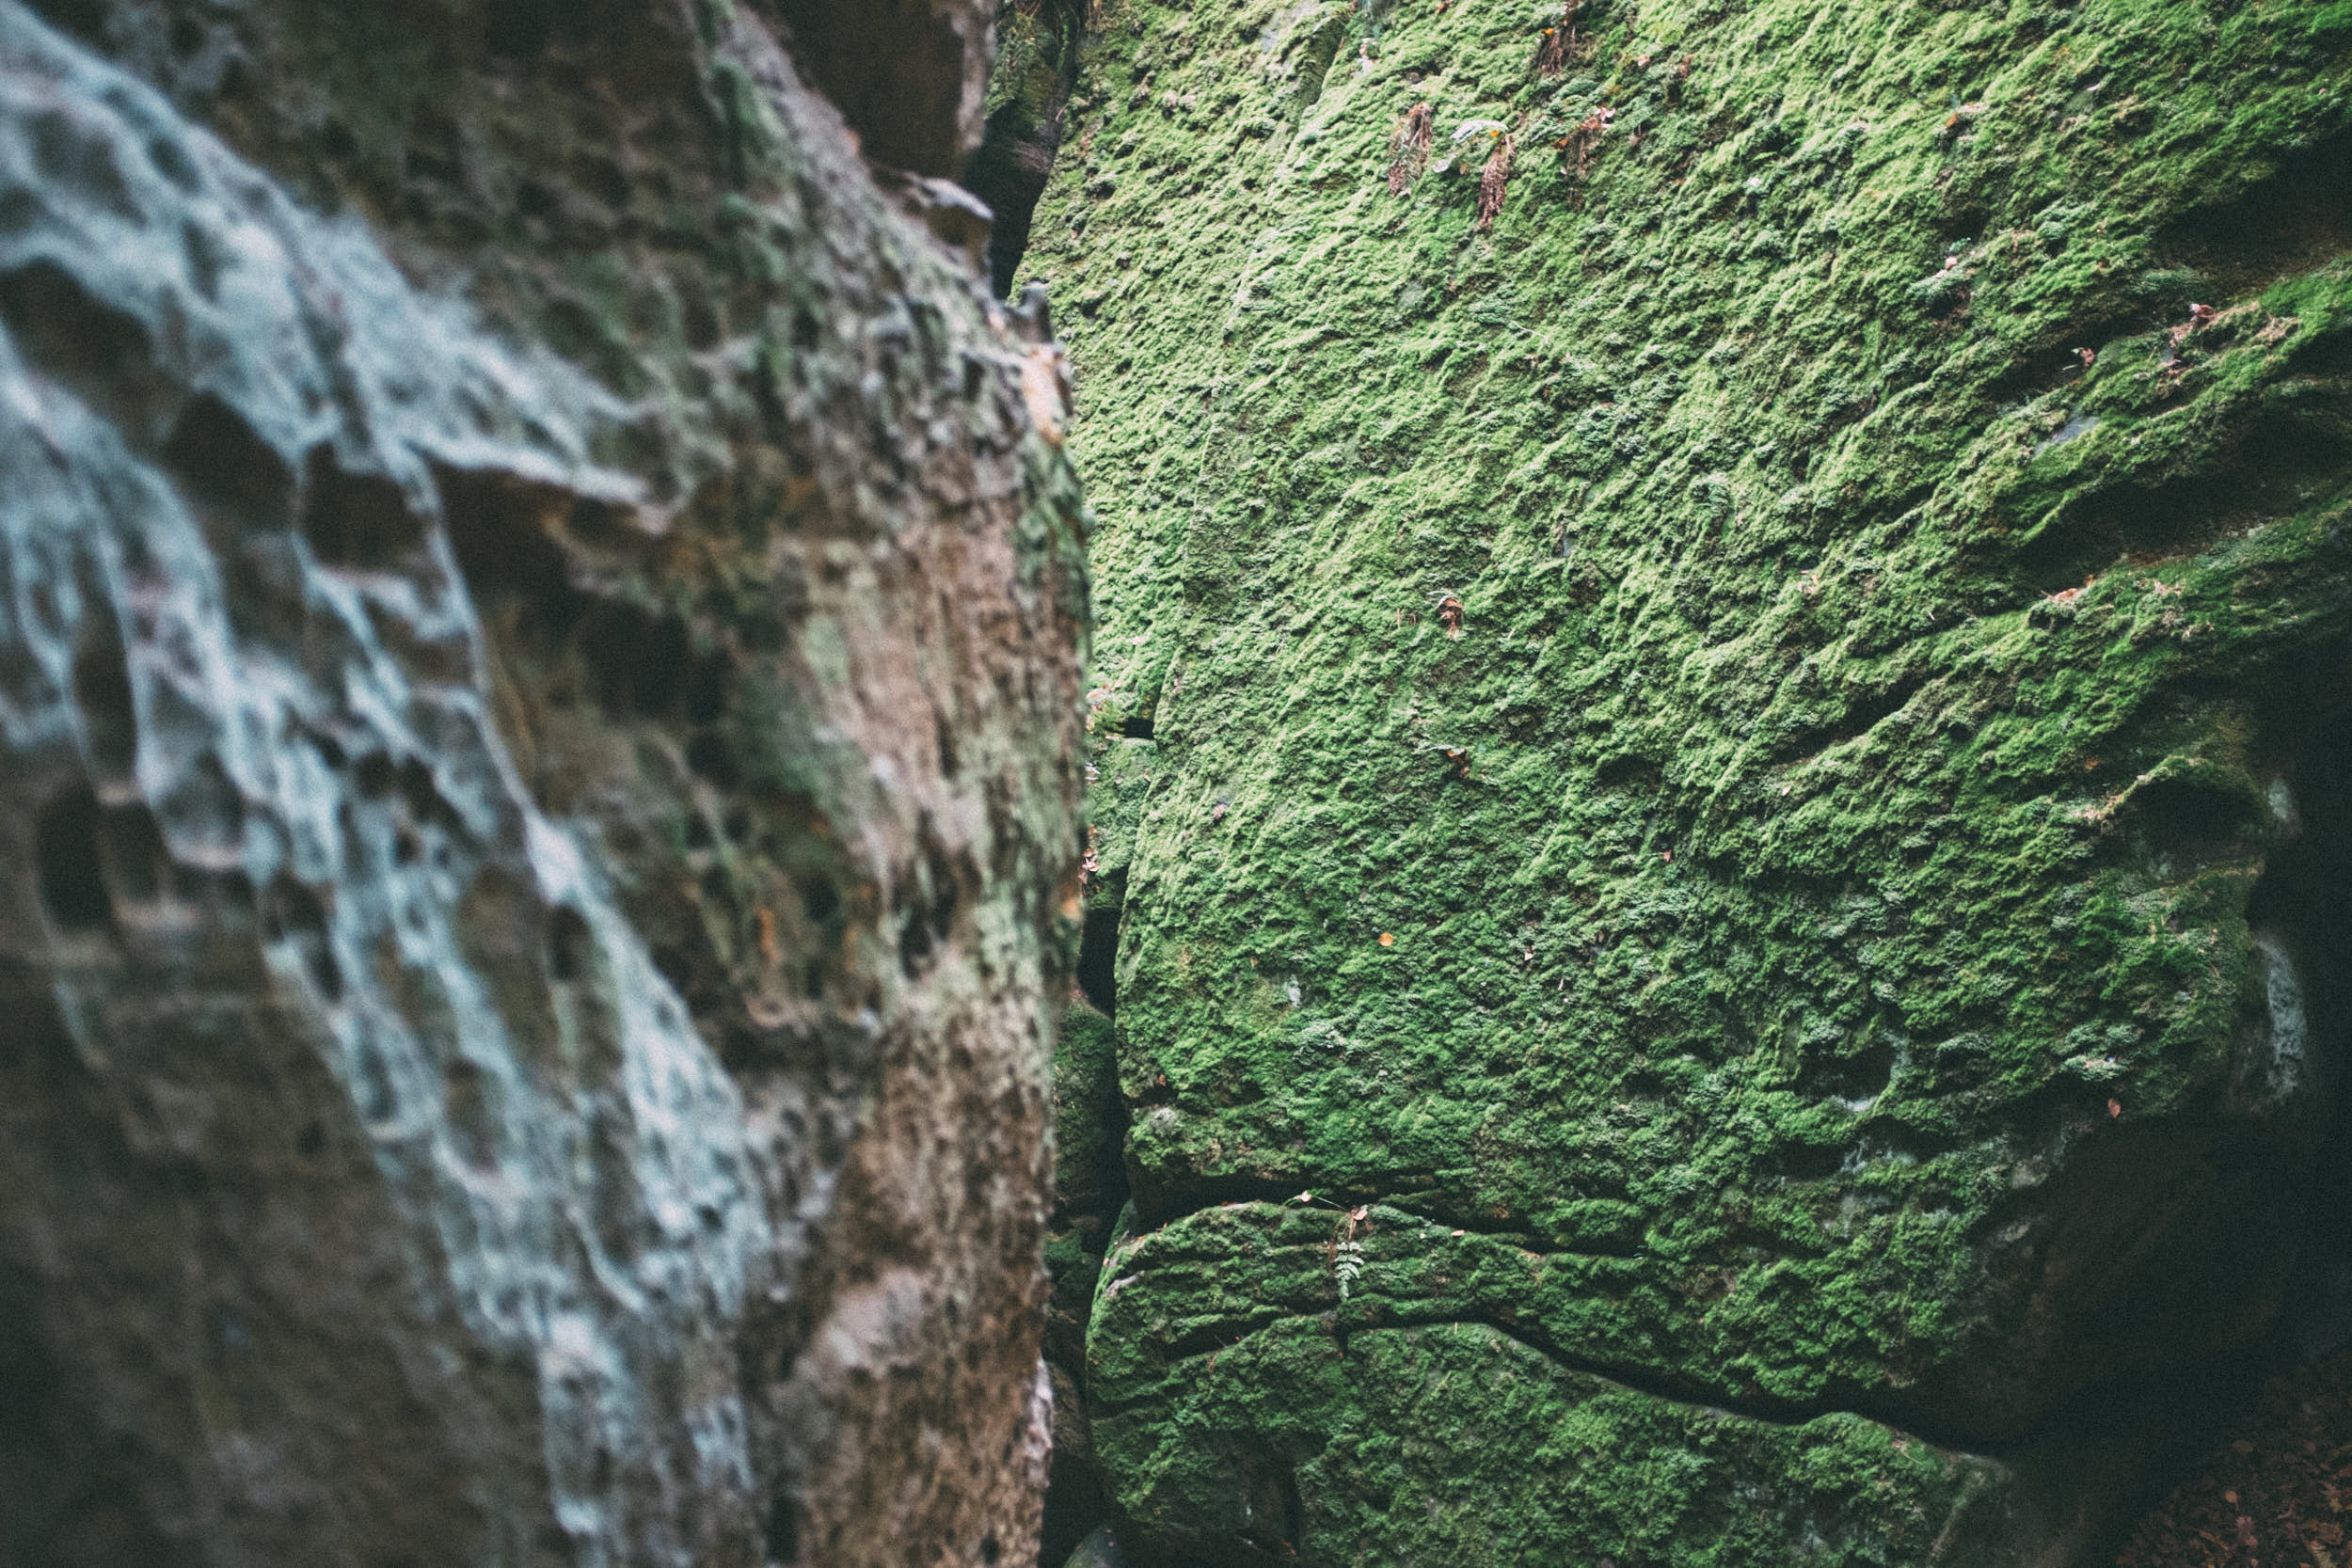 Abstract travel photography: large boulders covered with moss.